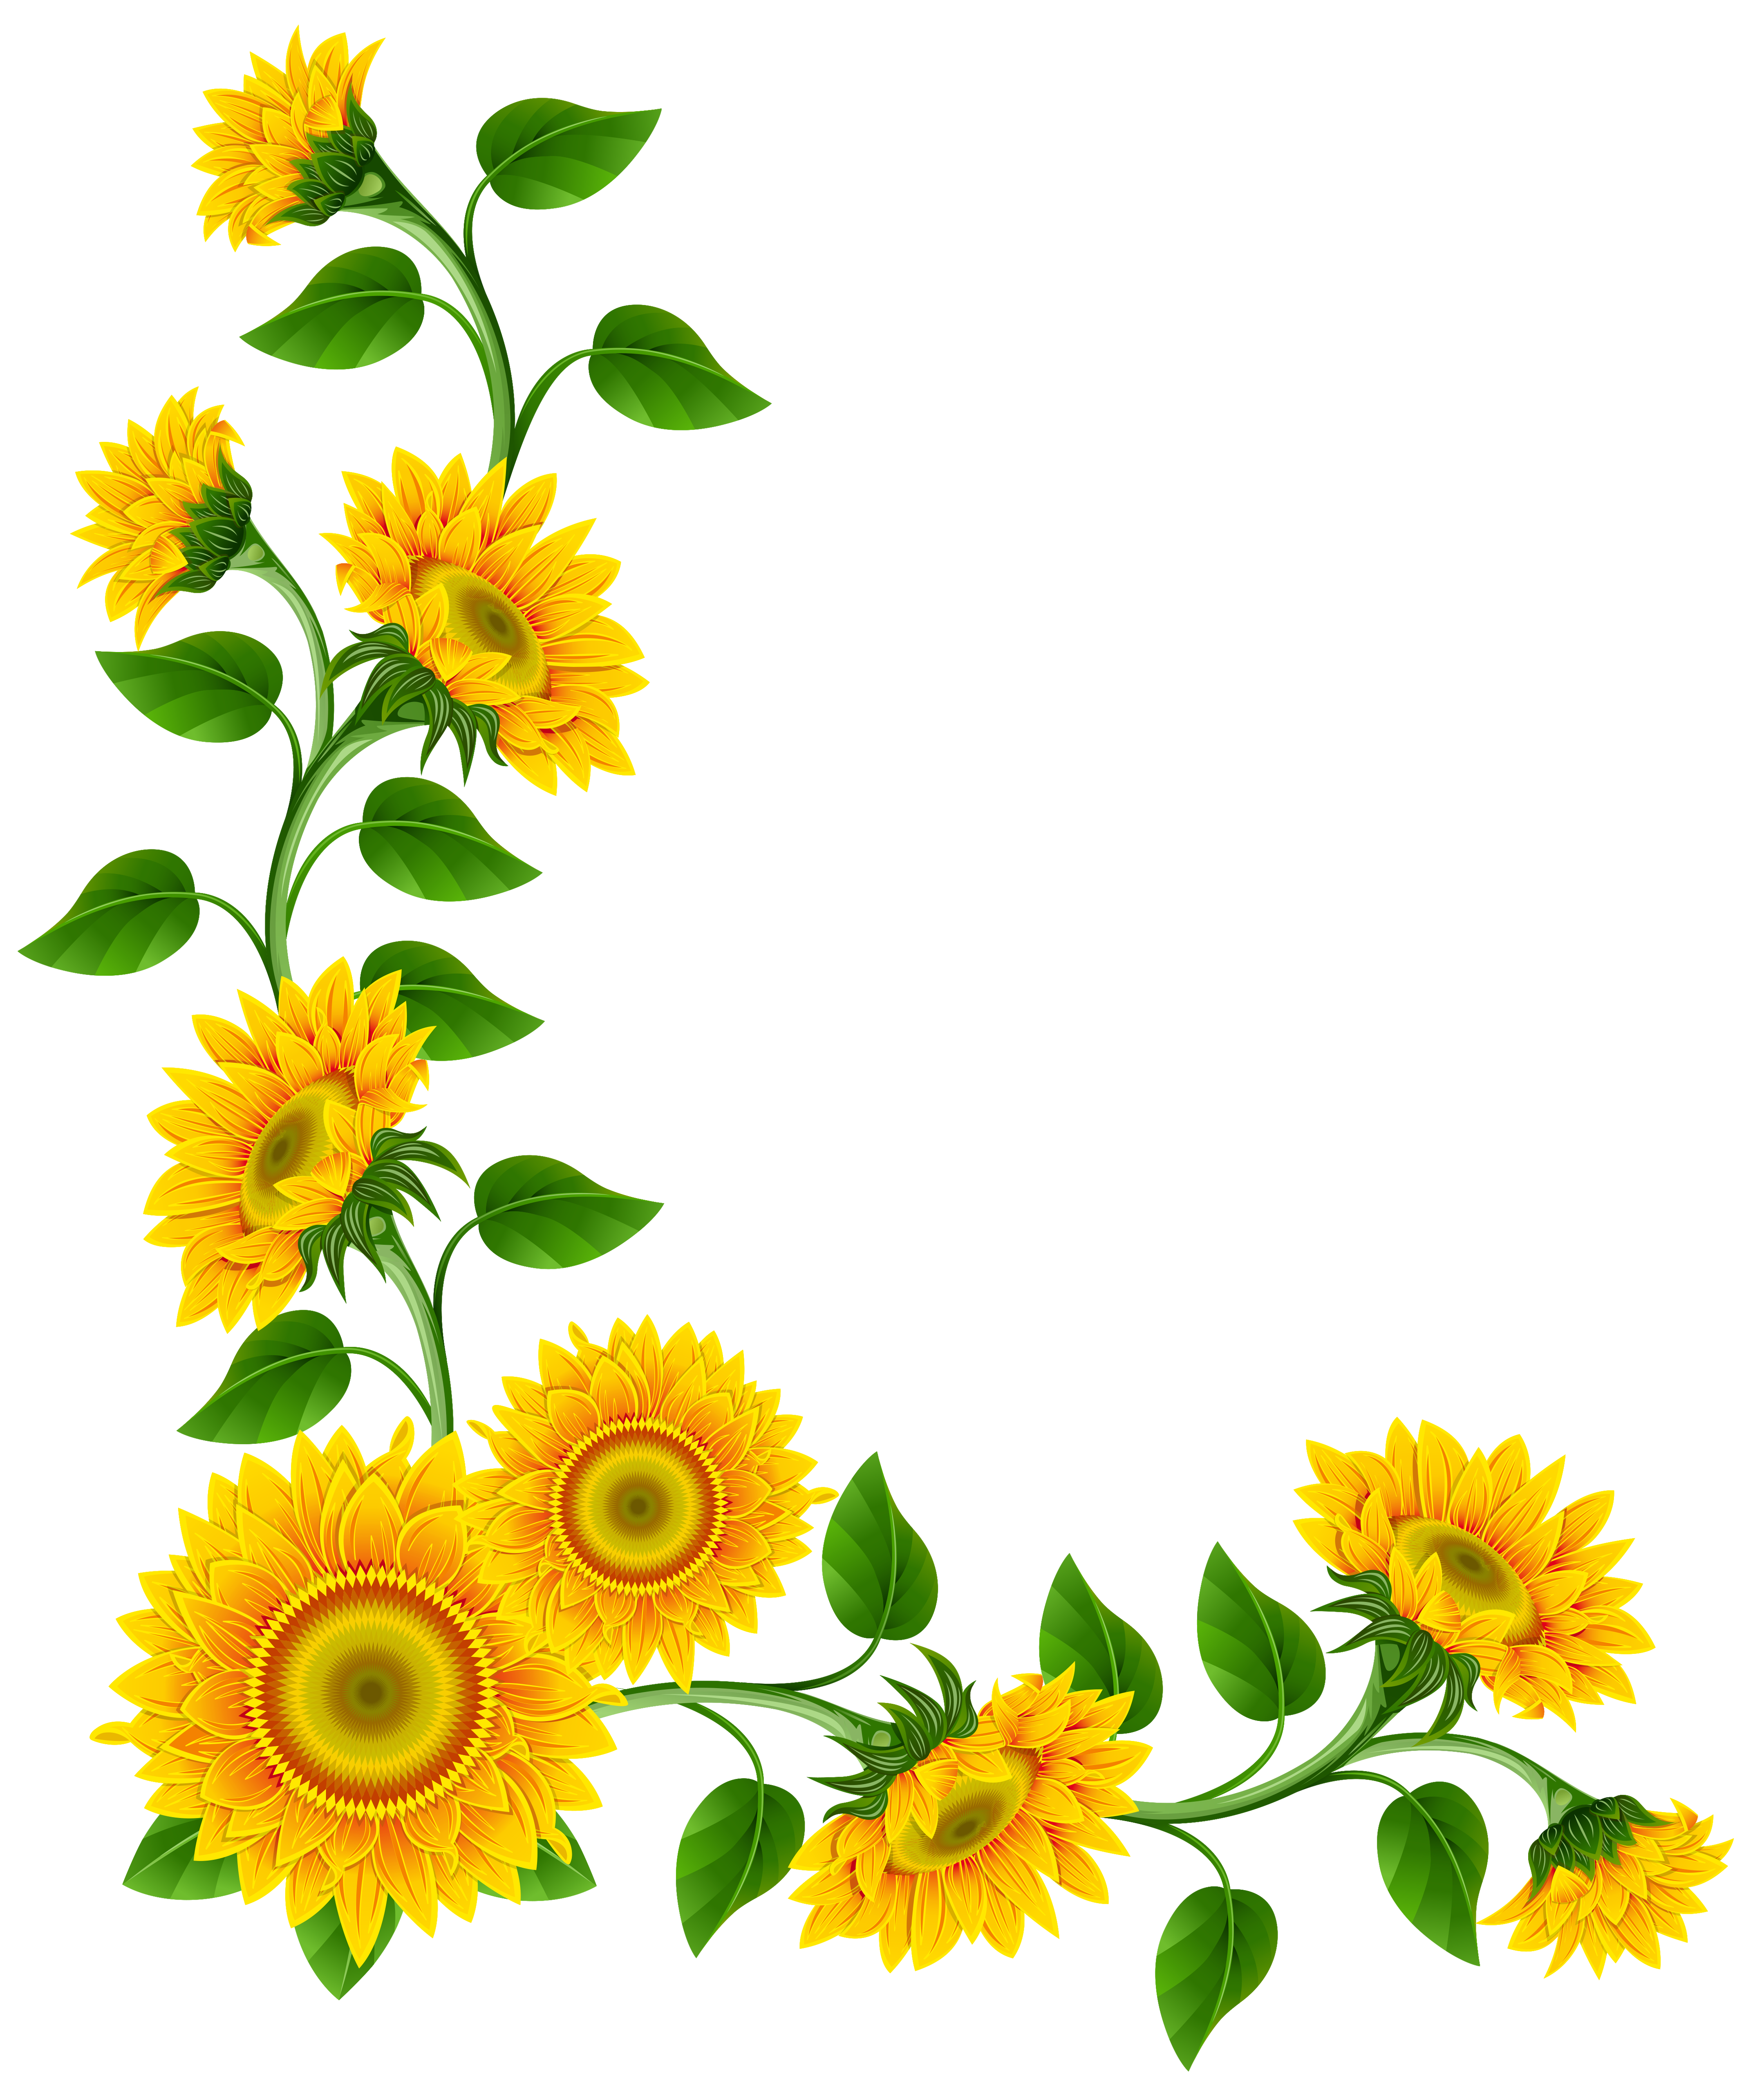 Sunflower Border Decoration PNG Clipart Image | This ...